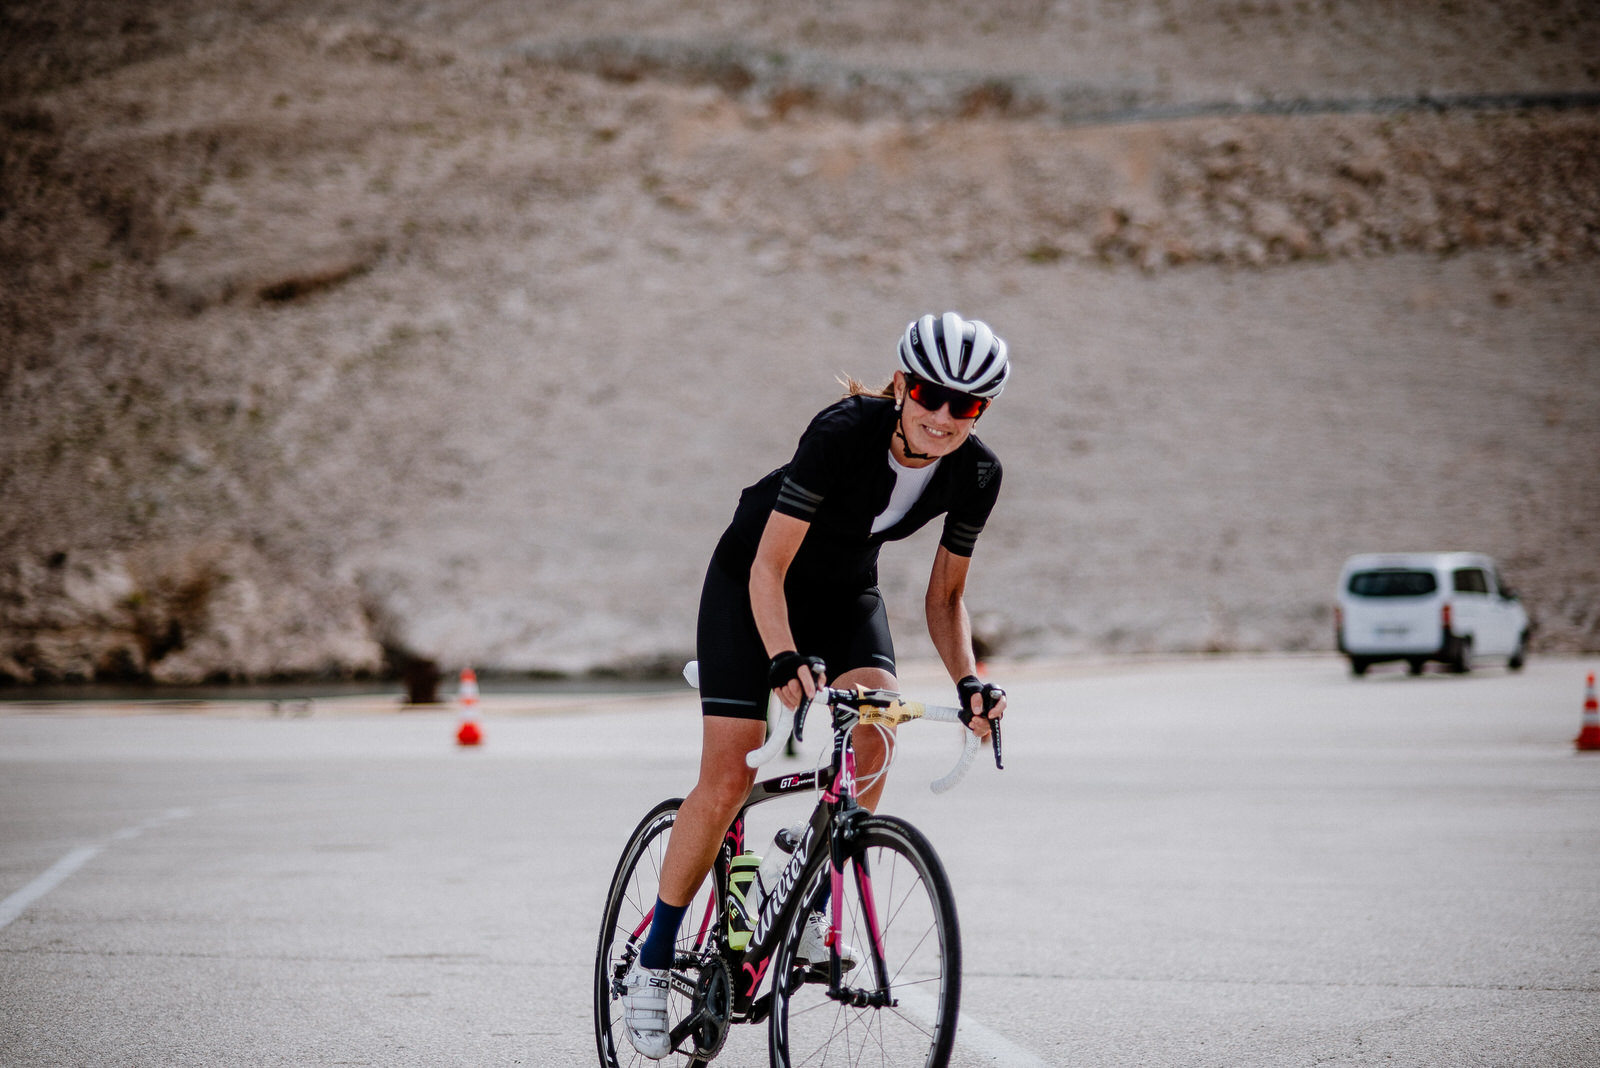 likaclub_Granfondo-Pag-–-Cycling-on-the-Moon_2019-39